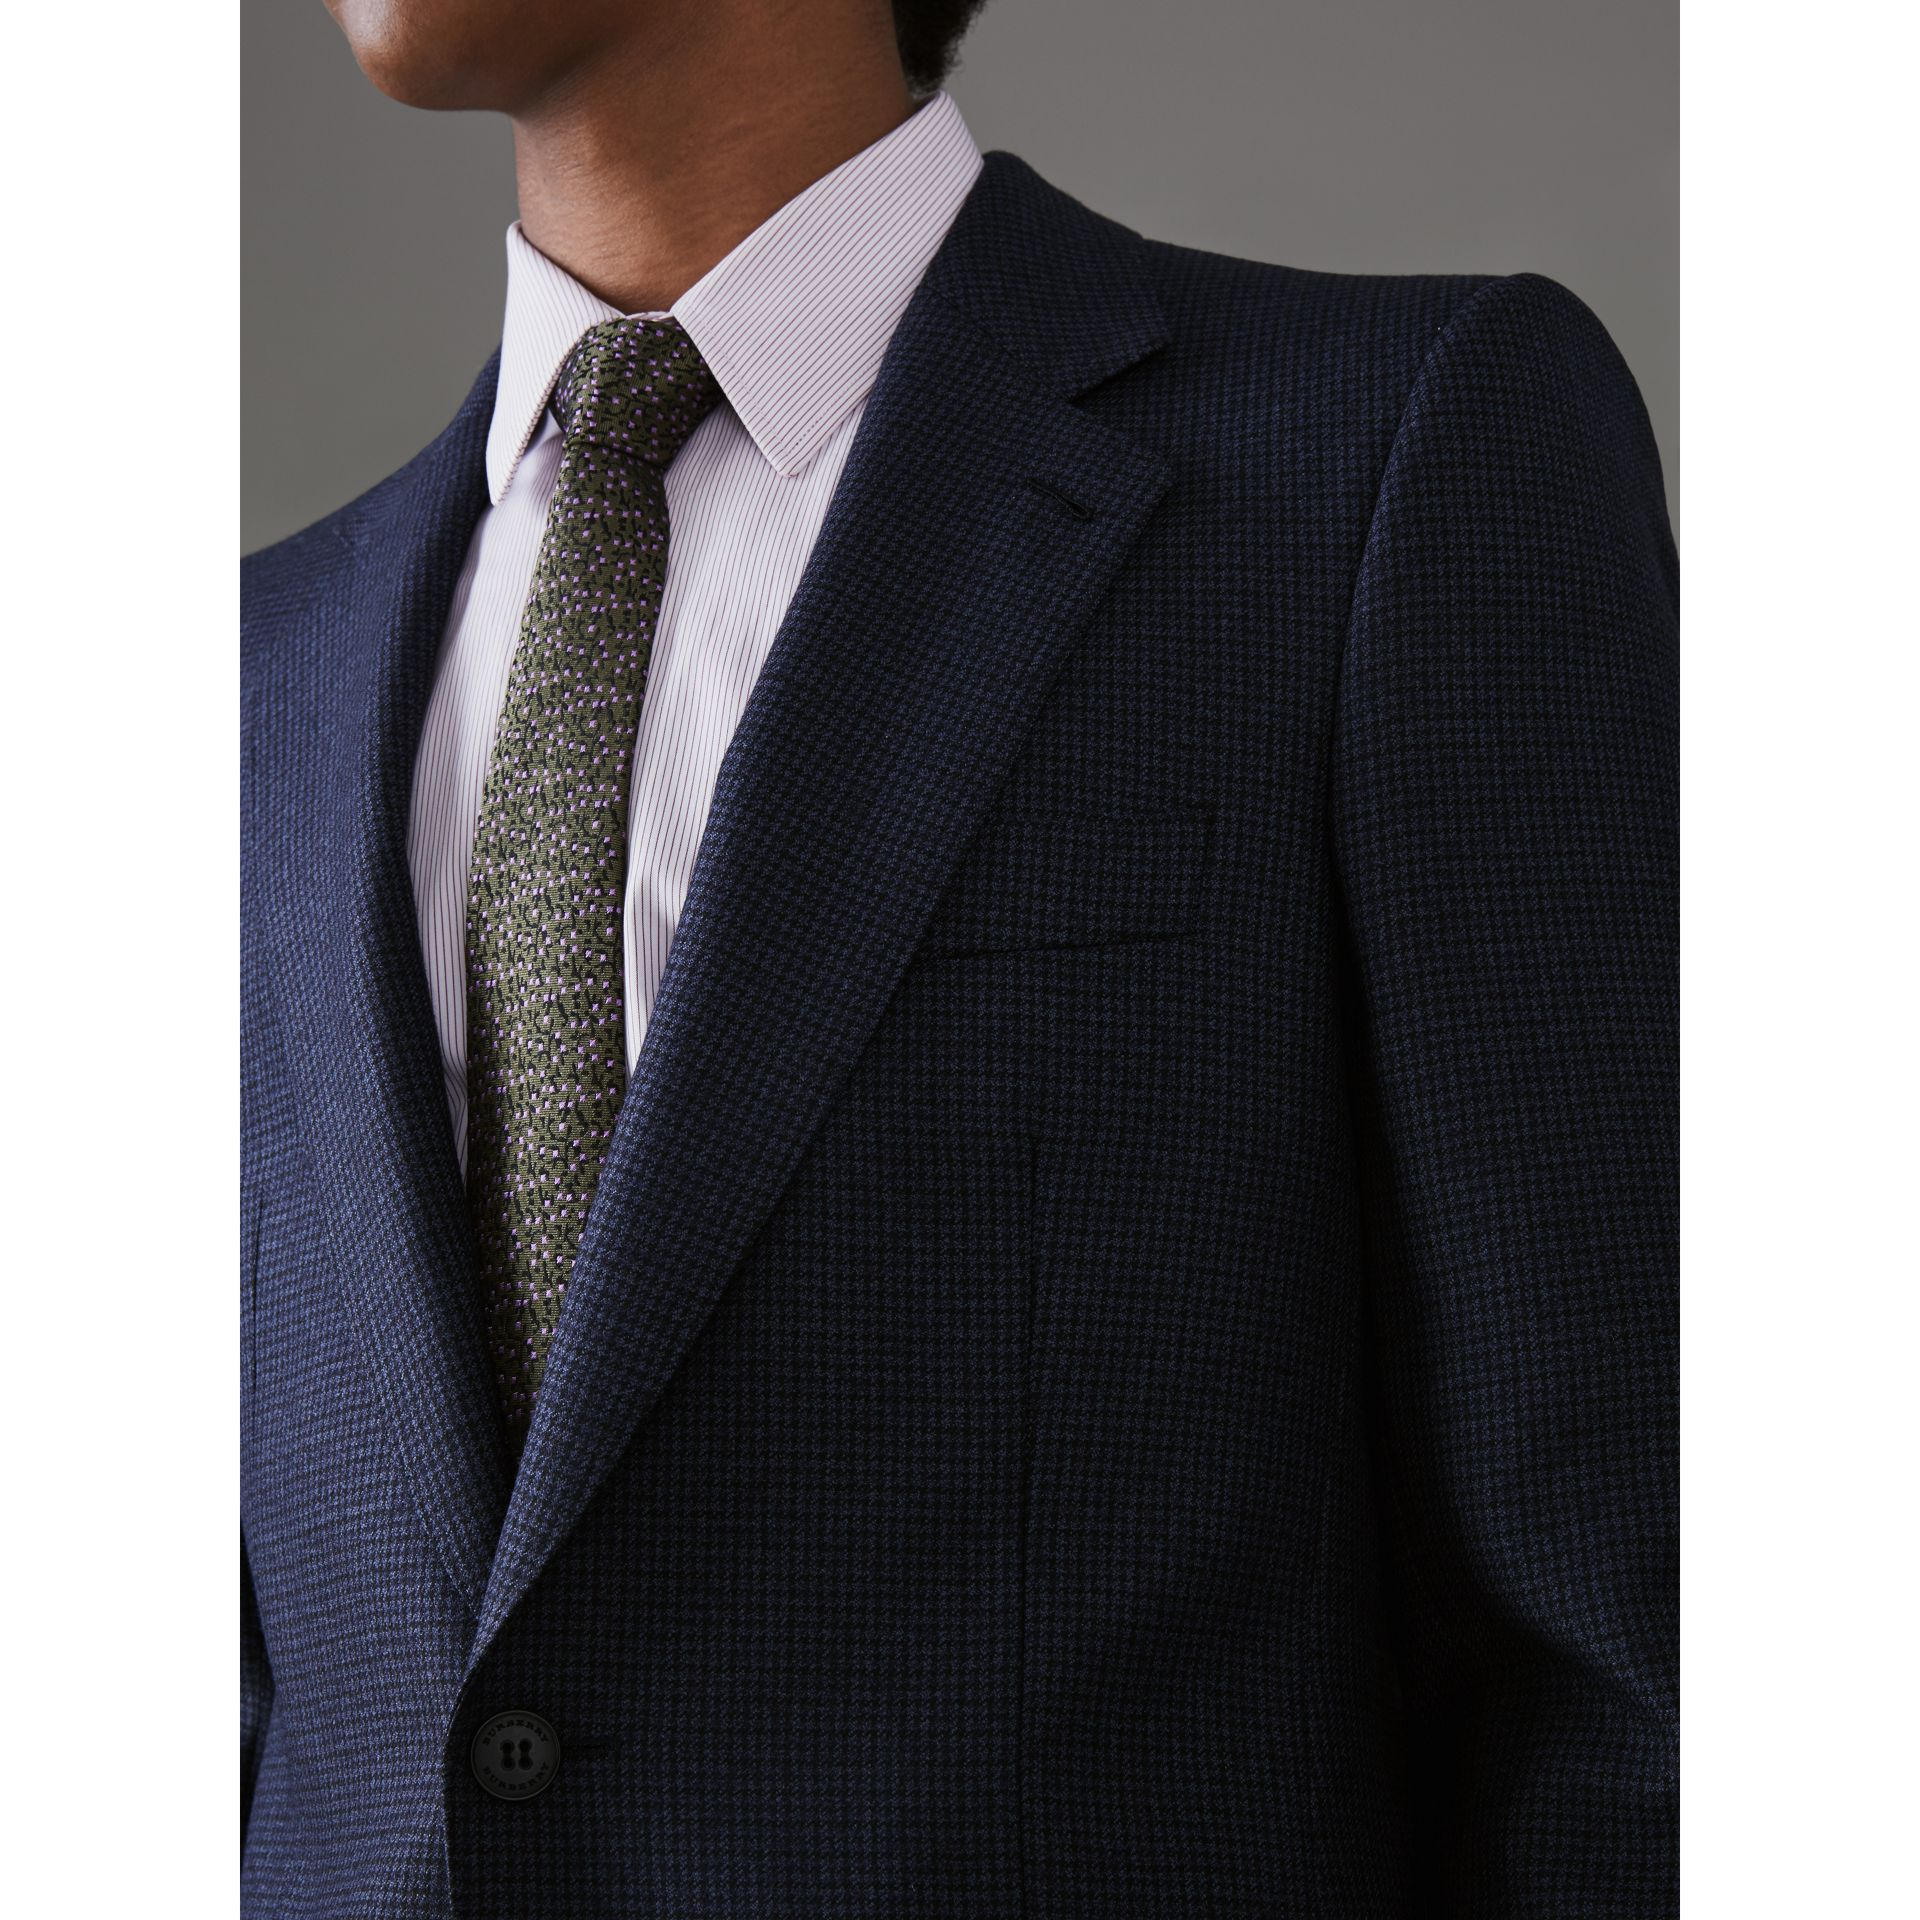 Slim Fit Puppytooth Wool Suit in Navy - Men | Burberry Hong Kong - gallery image 1